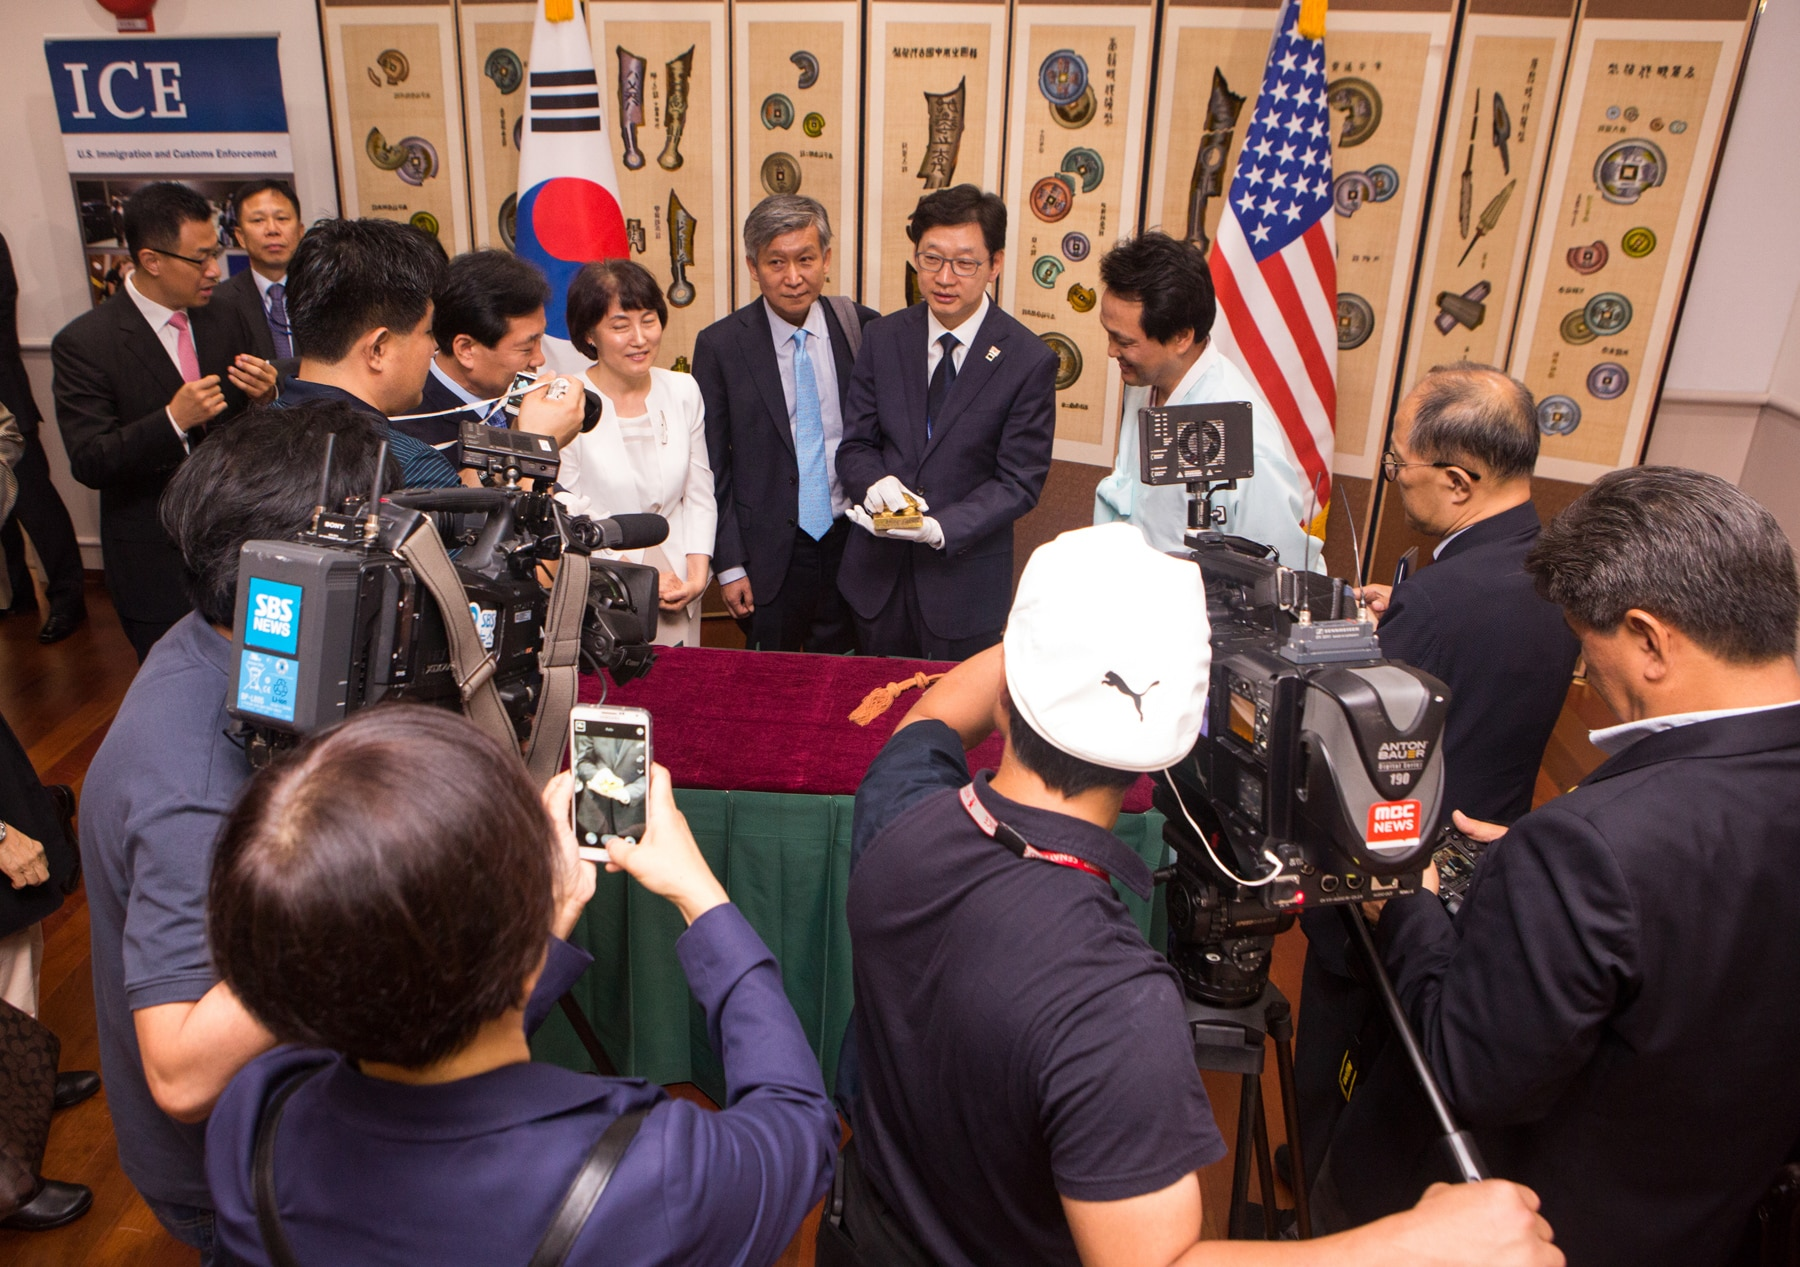 Press conference with speaker holding carved seal (State Dept./D.A. Peterson)